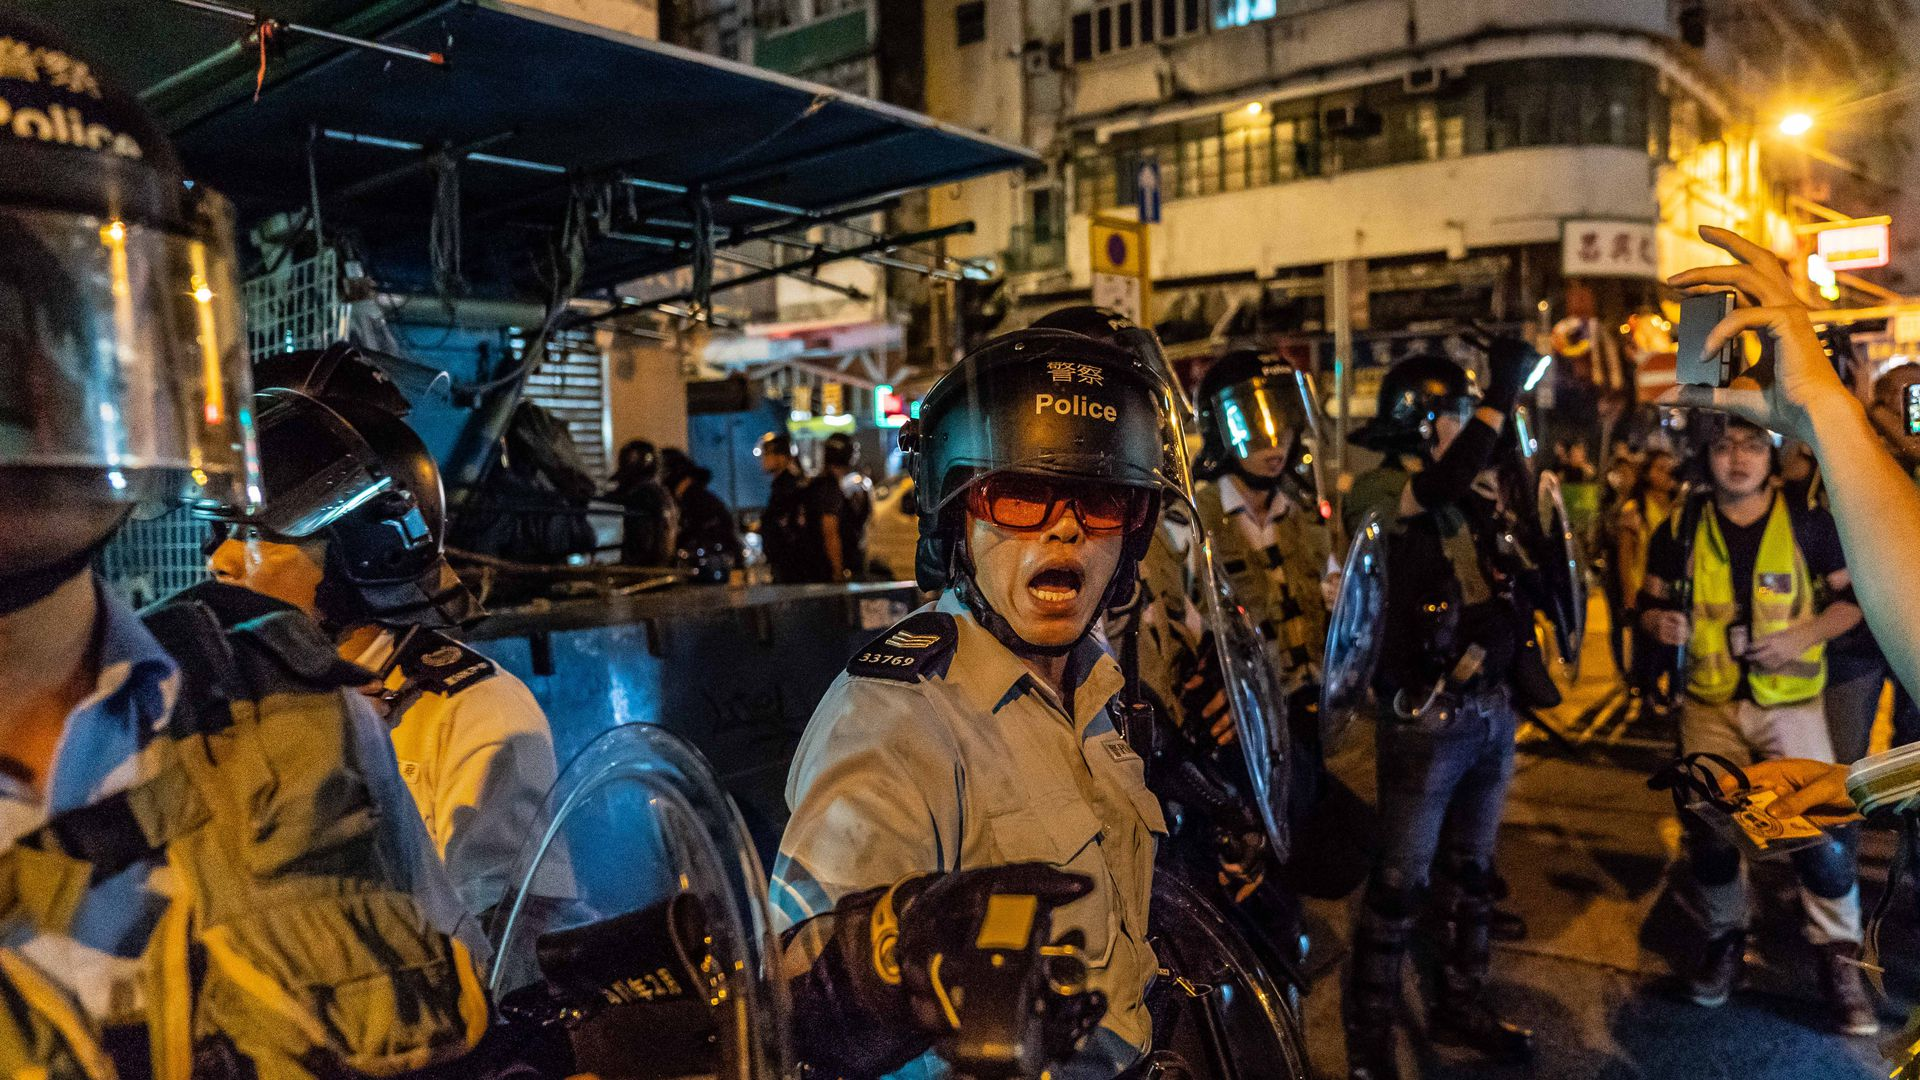 Hong Kong police during a protest against the extradition bill